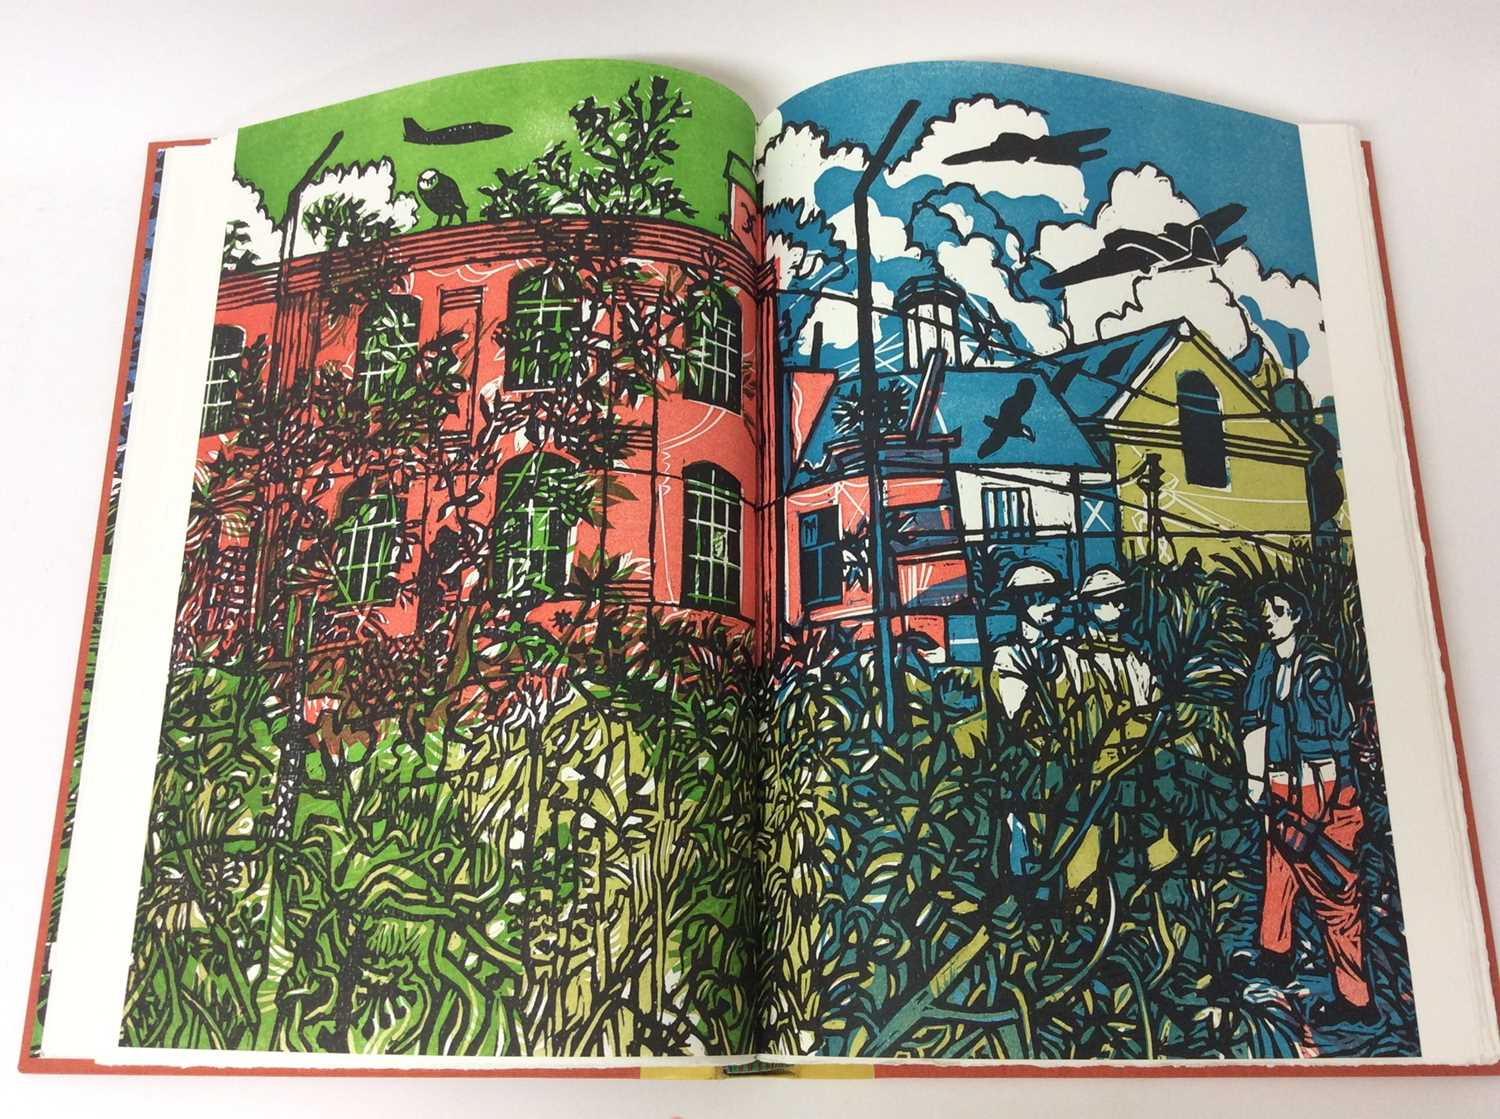 Pennant and His Welsh Landscape with woodcuts by Rigby Graham by Gregynog Press 2006, limited editio - Image 6 of 9